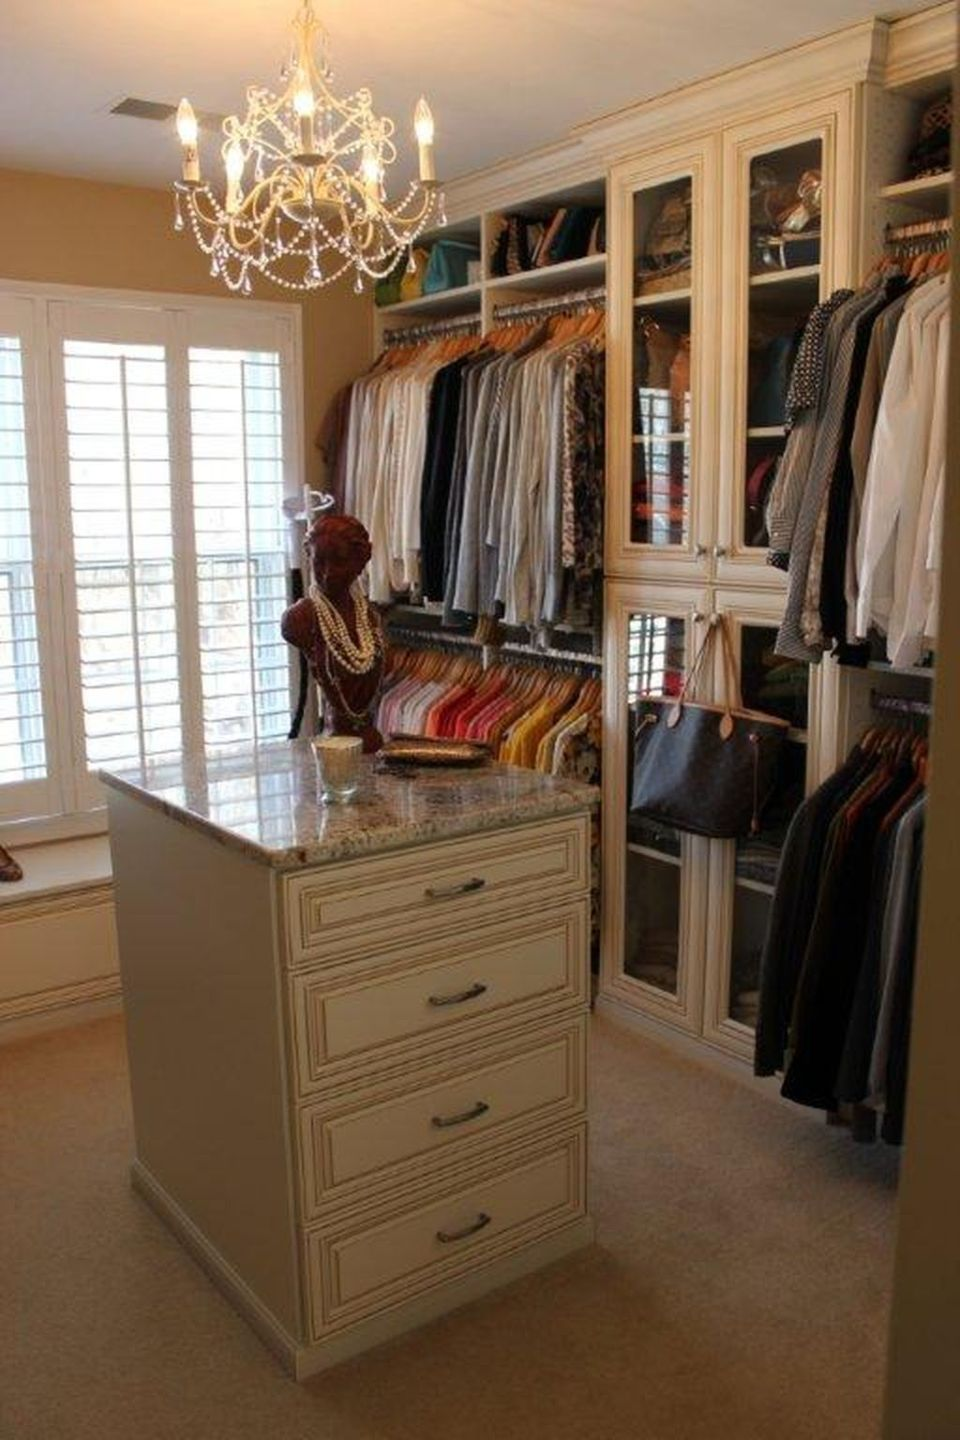 Ideas Of Functional And Practical Walk In Closet For Home: 30 Interesting Walk In Closet With Window 16